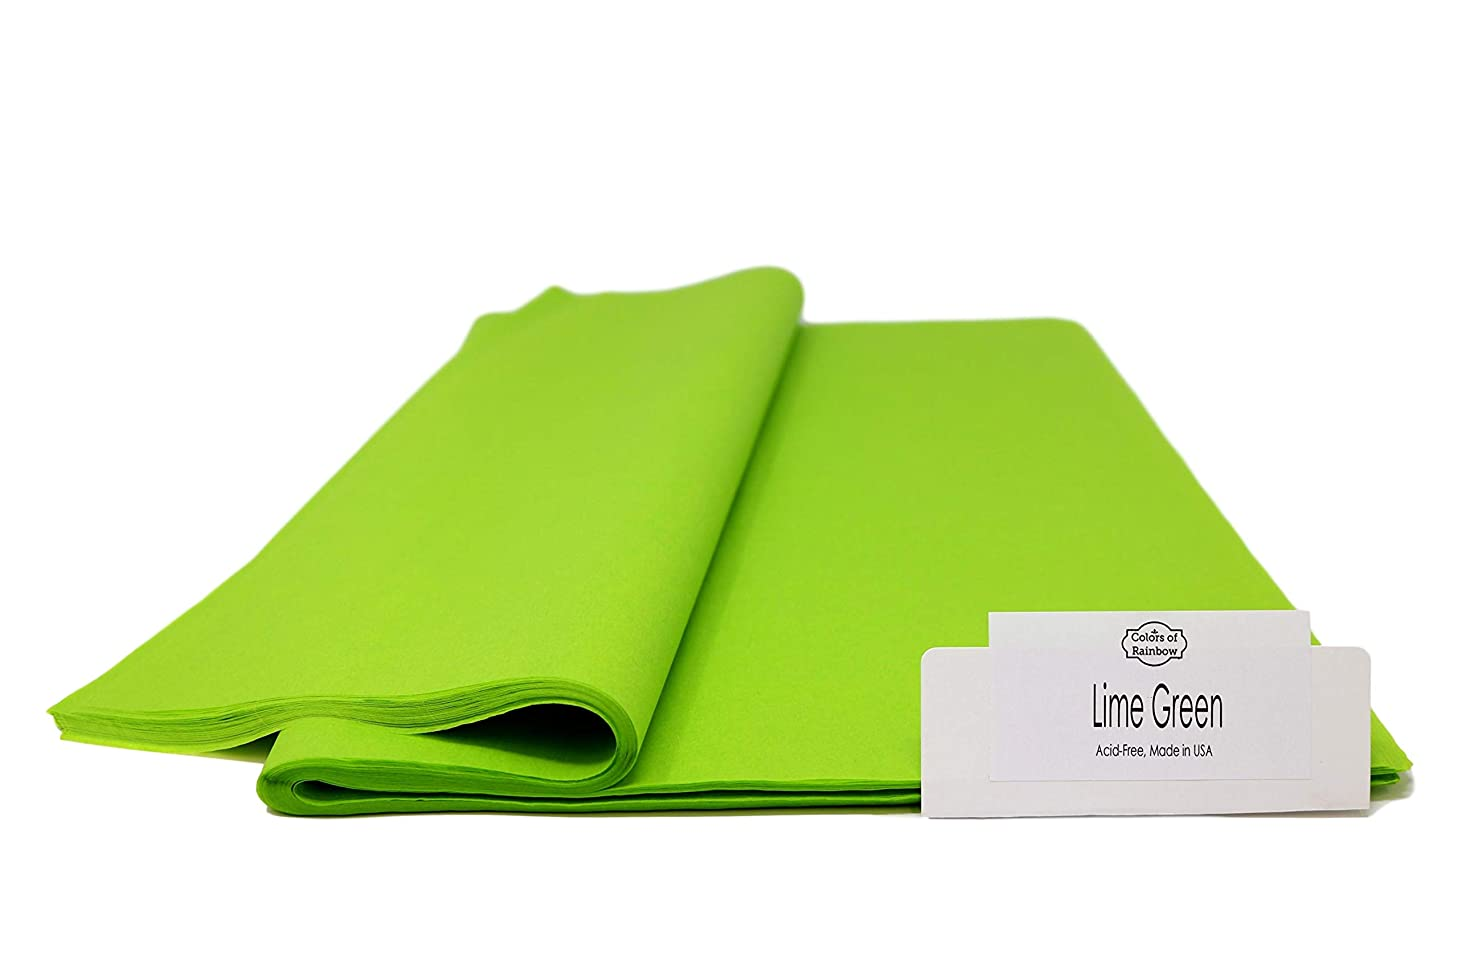 """Lime Green - 96 Sheets - Gift Wrapping Tissue Paper 15"""" x 20"""" - Made in United States by Colors of Rainbow?"""